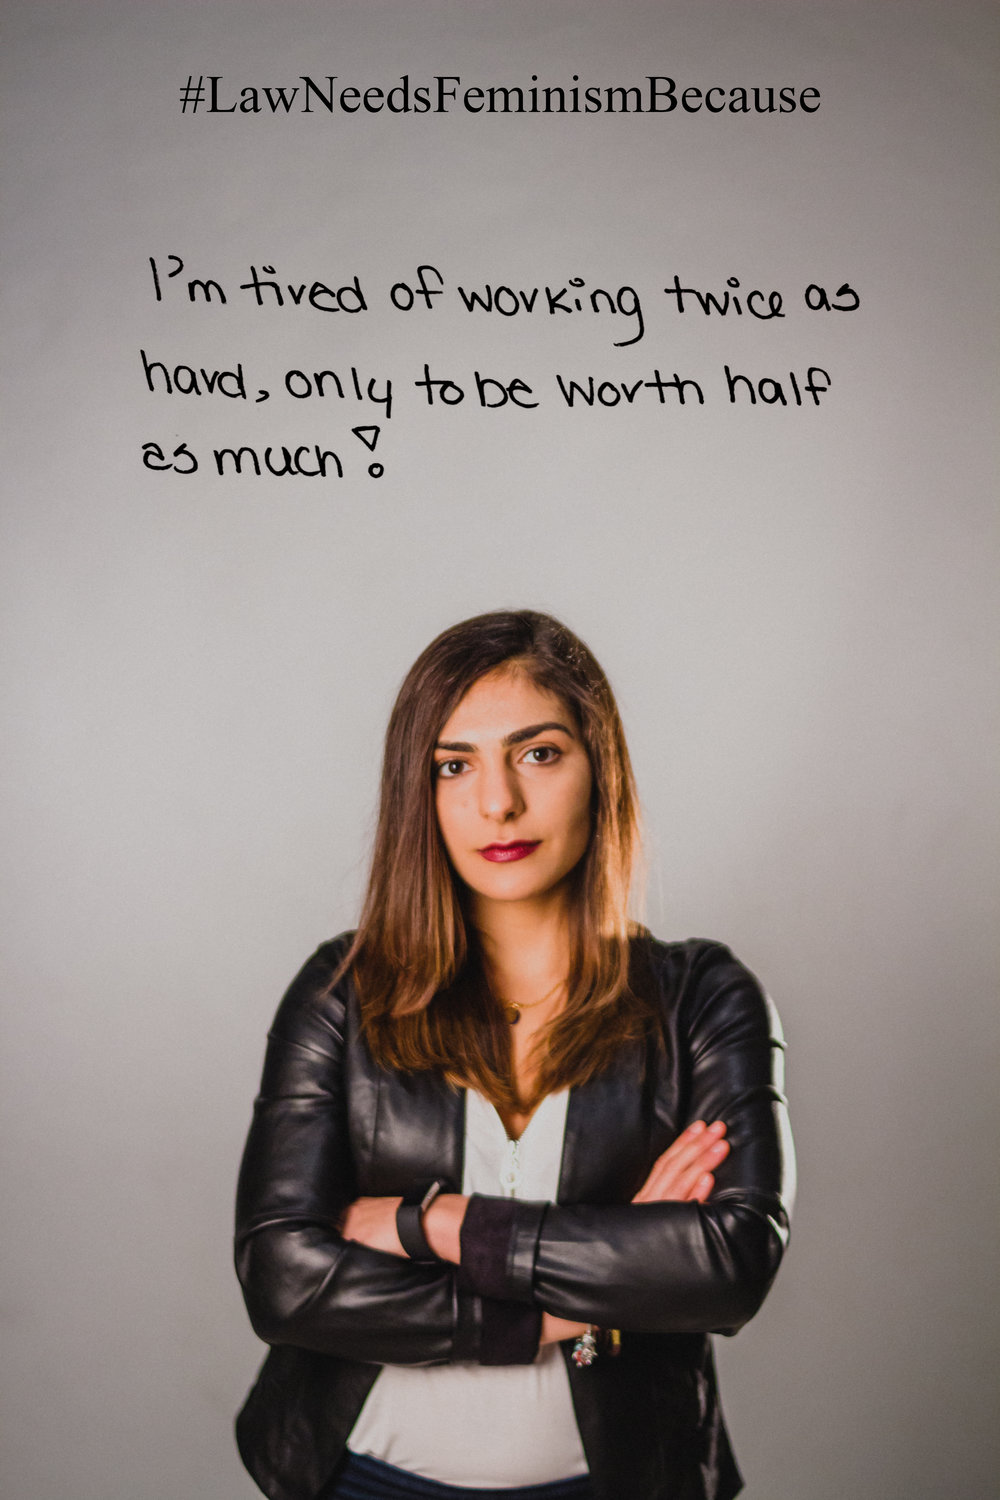 "Law Needs Feminism Because  ""I'm tired of working twice as hard, only to be worth half as much!"""